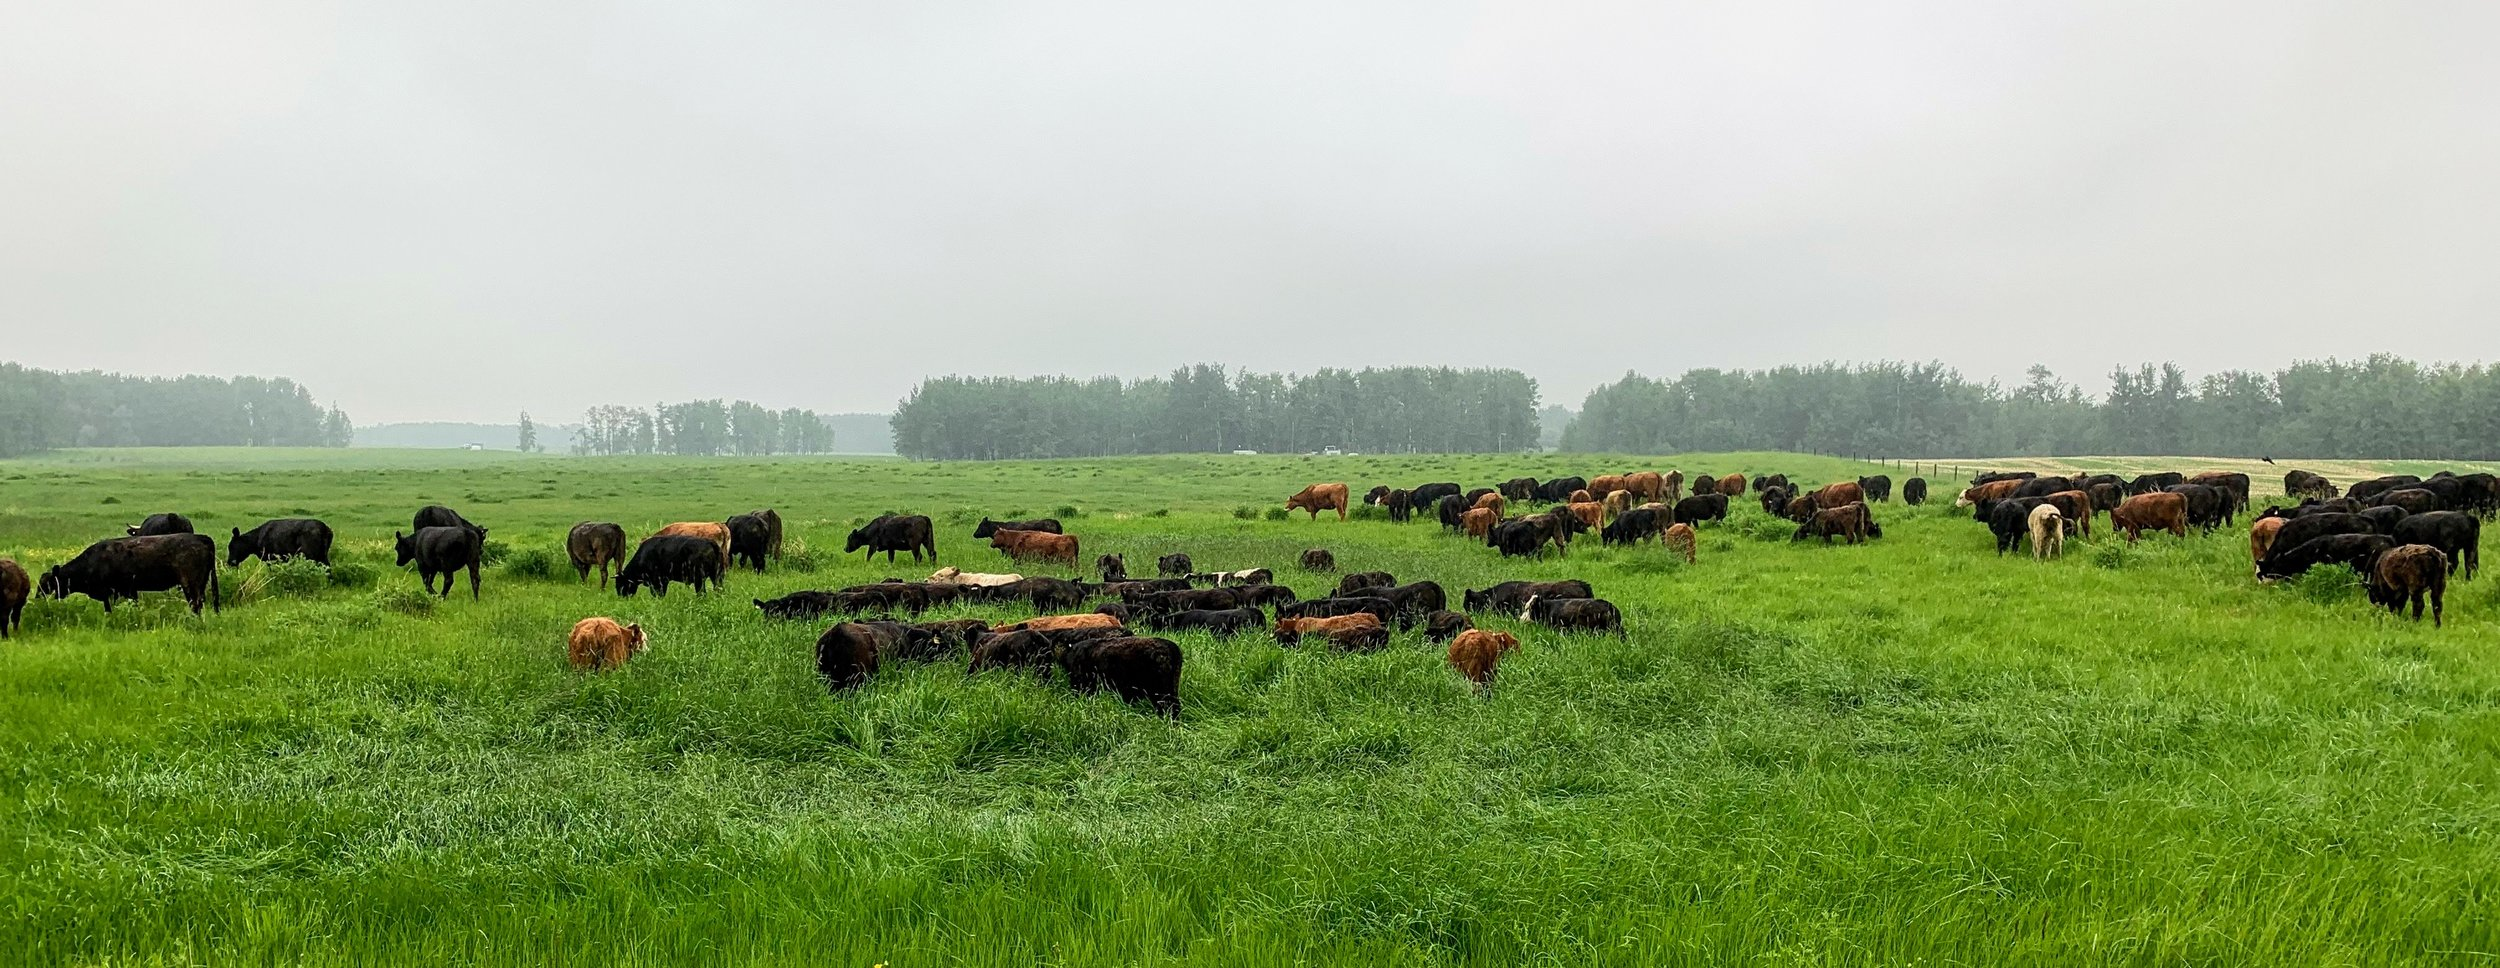 This is how we finish our beef. They are out on fresh green grass and only receive grass/hay for their diet.